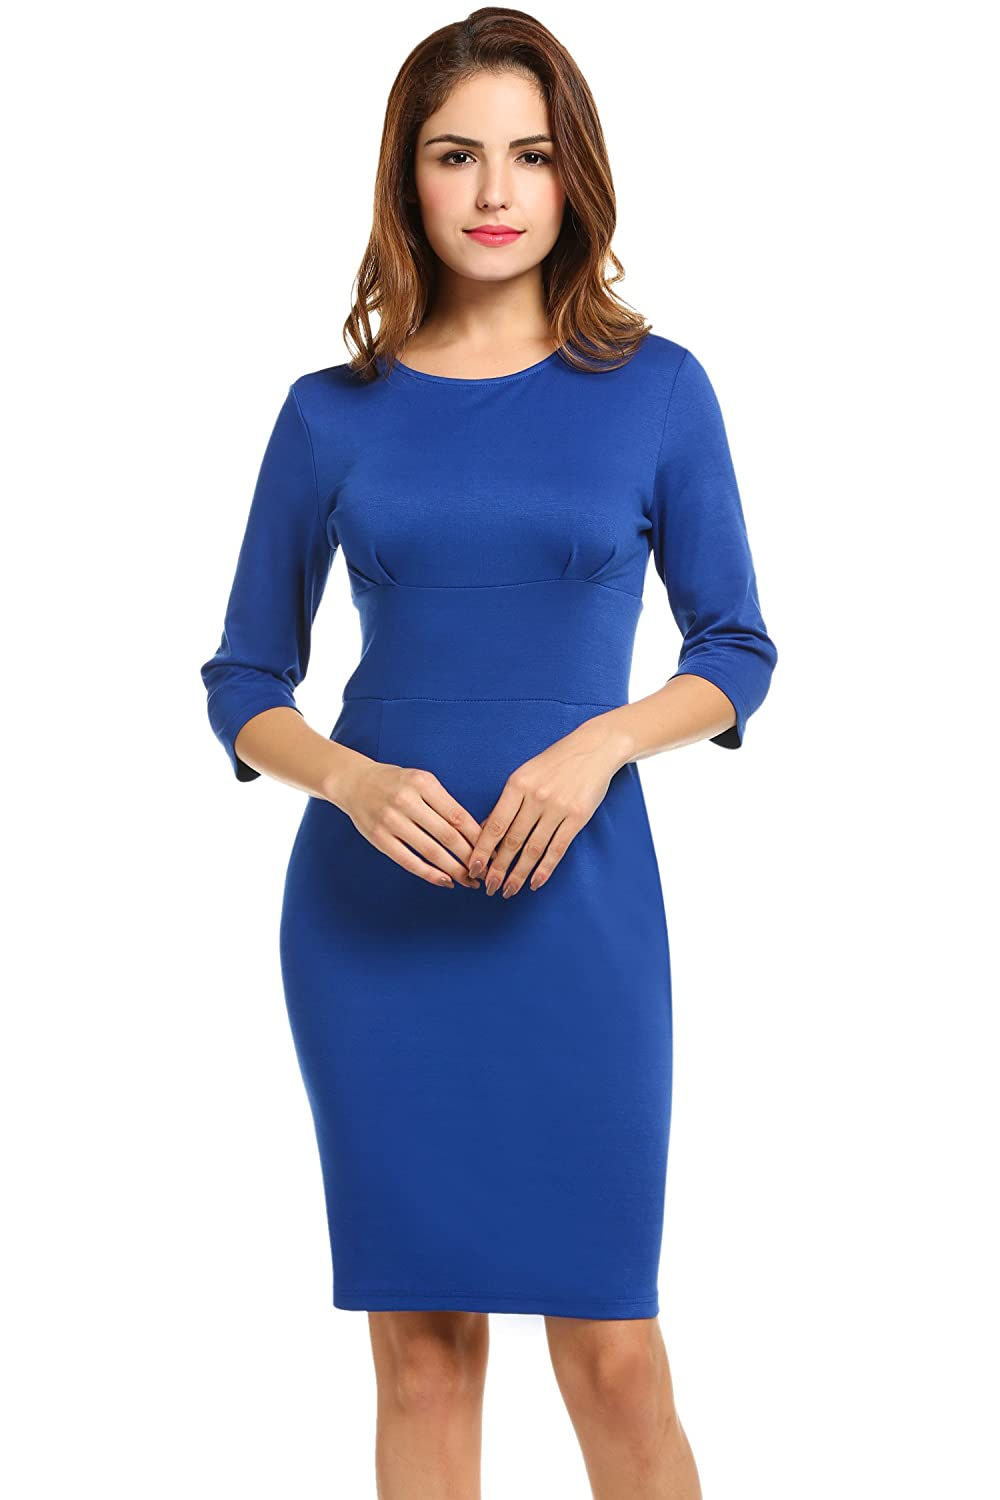 Meaneor Women 3/4 Sleeve Solid Business Party Bodycon Pencil Dress MAH006524